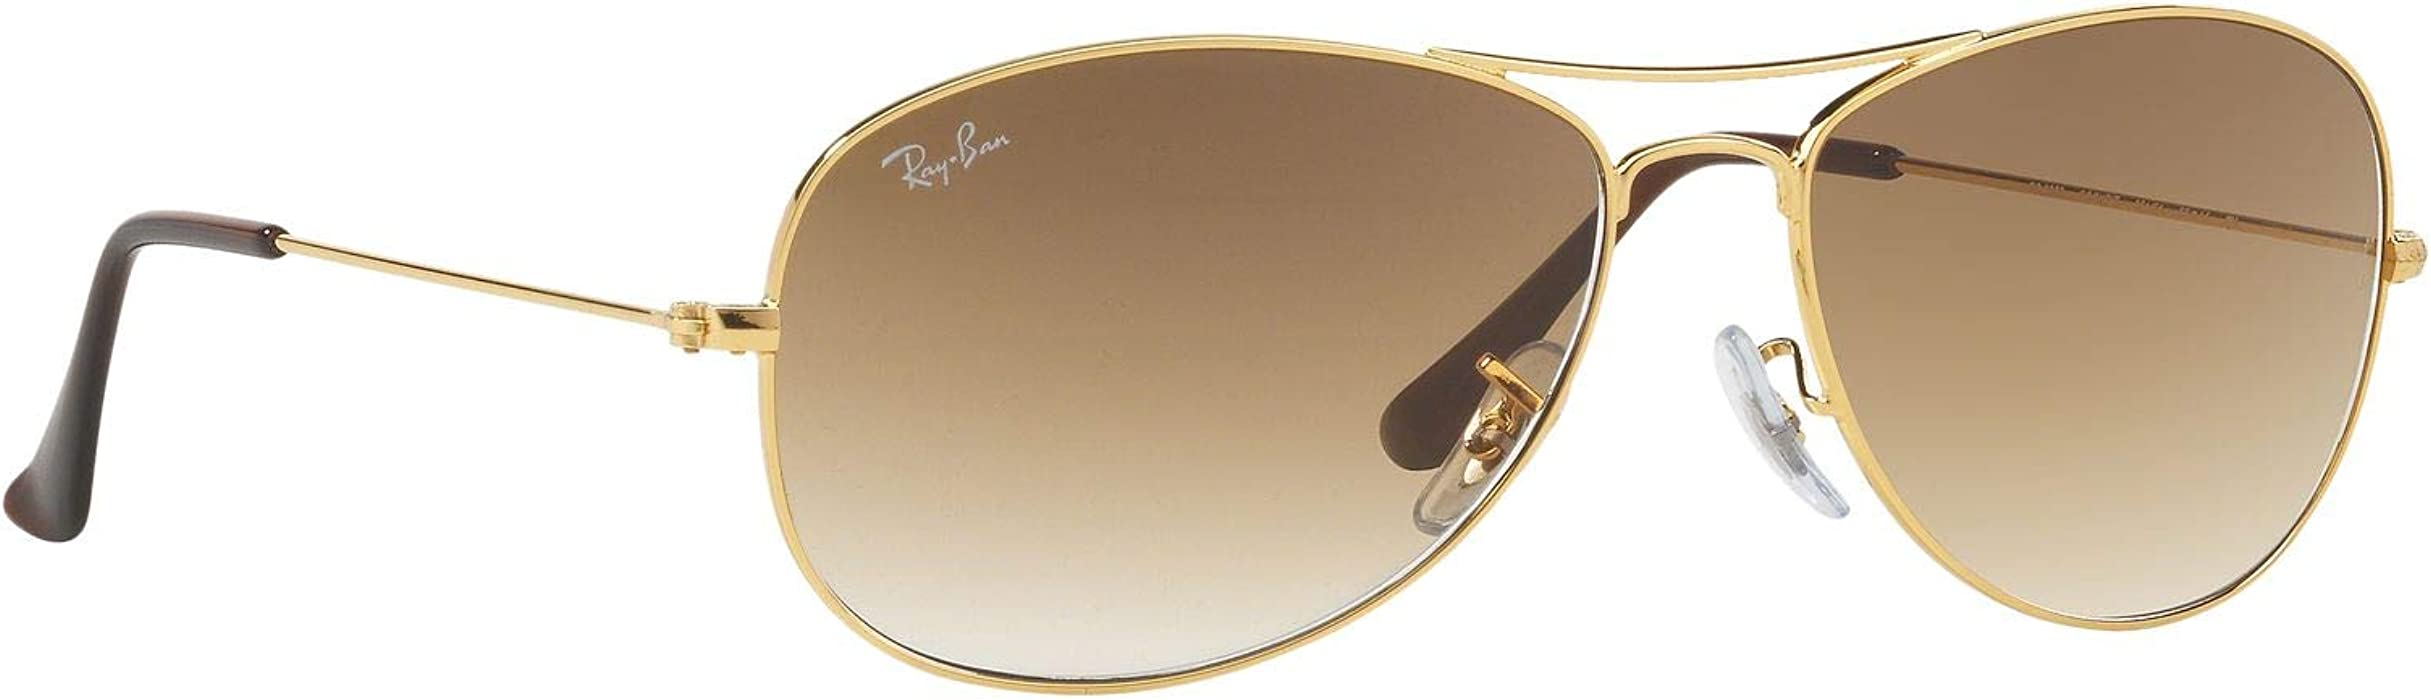 fc368bf8100 Ray Ban RB3362 COCKPIT 001 51 56M Arista Crystal Brown Gradient Sunglasses  For Men